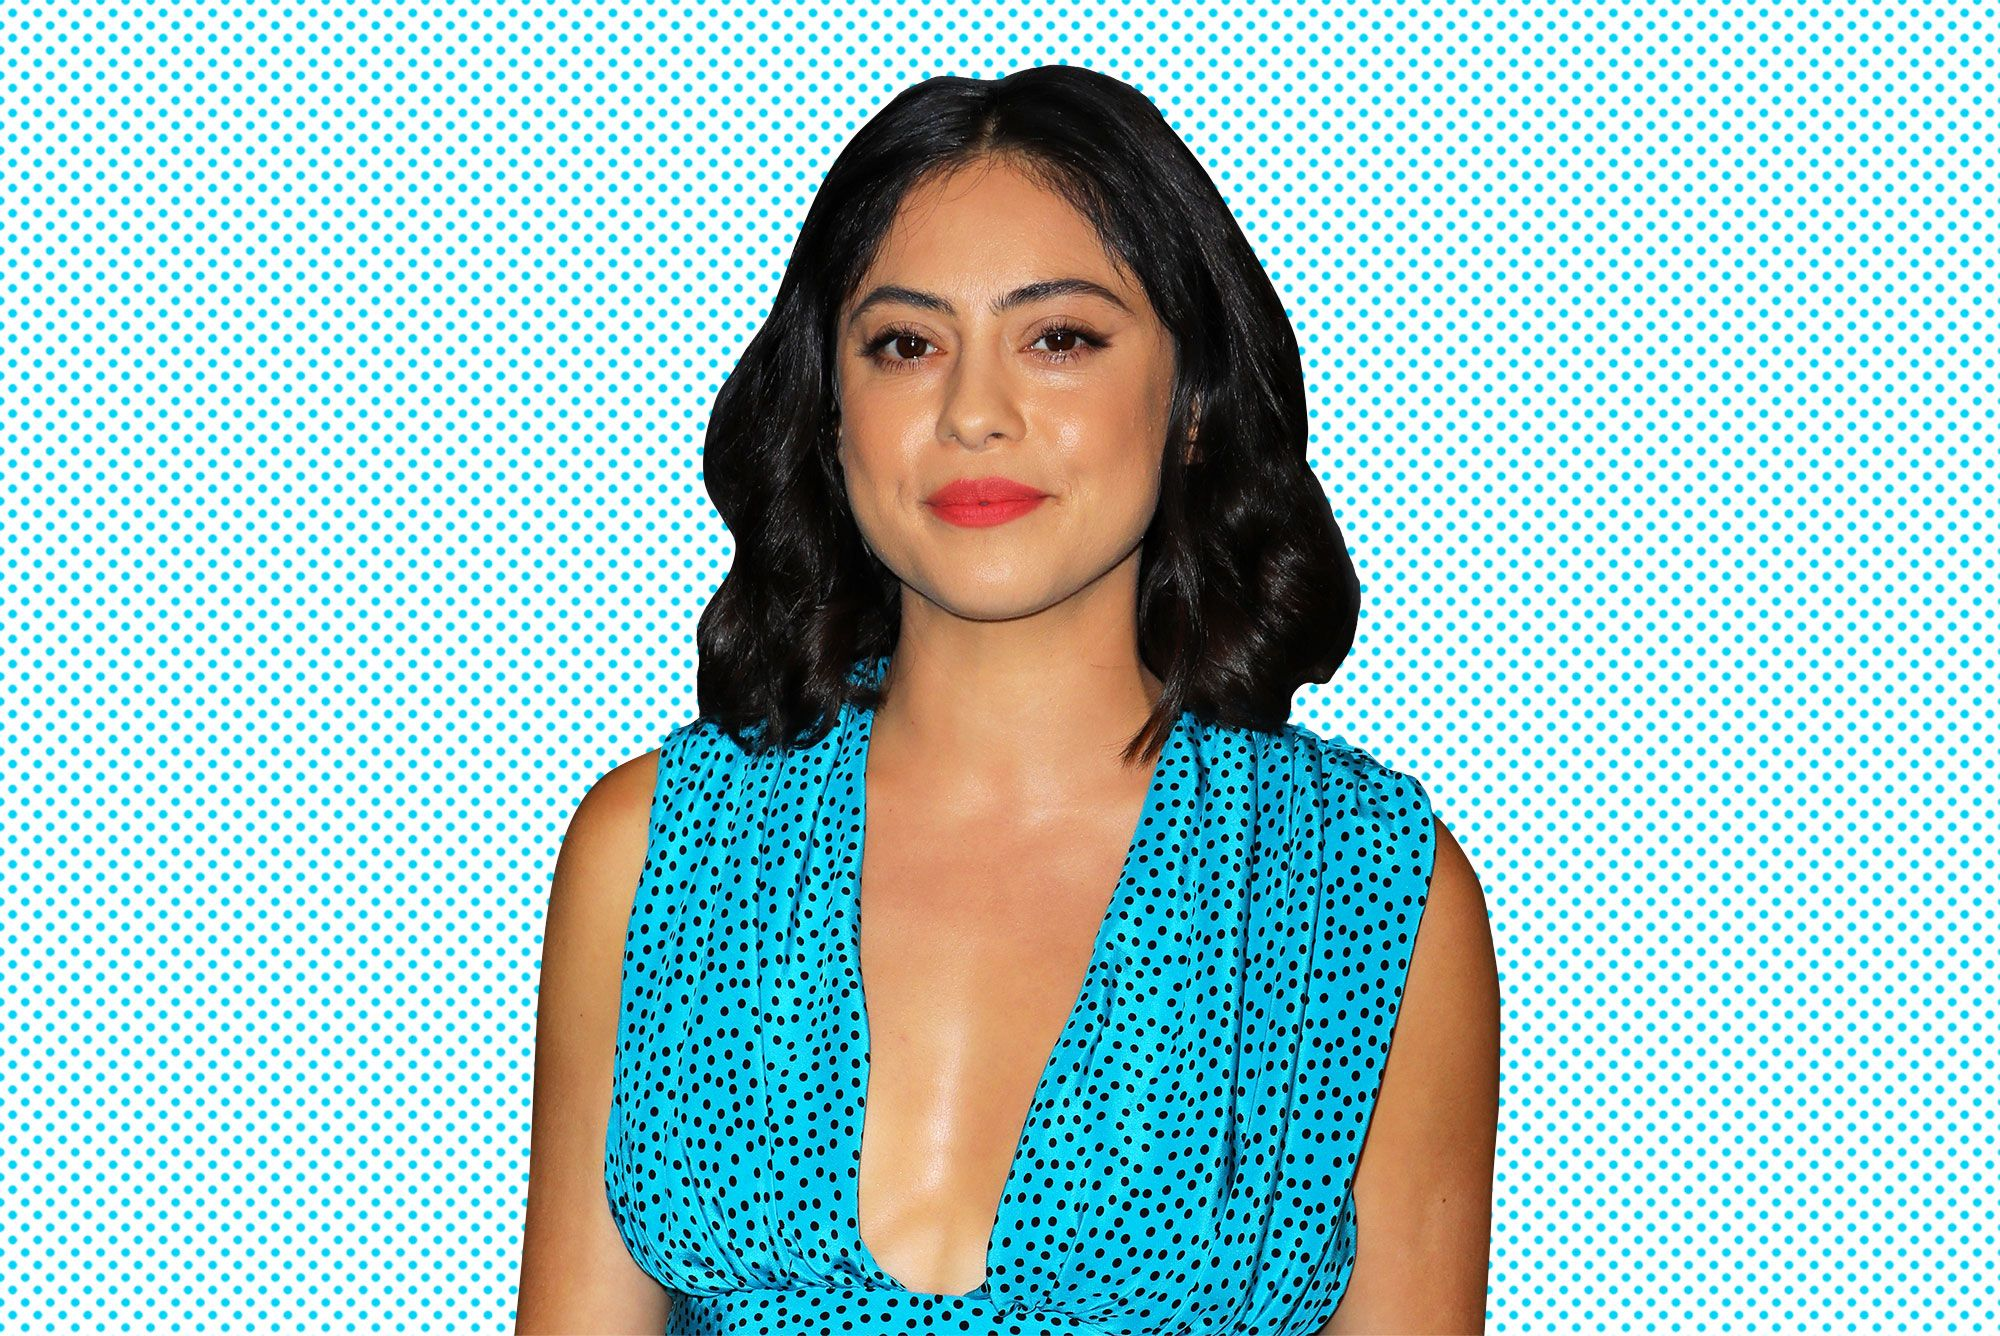 Undone's Rosa Salazar Has No Answers and Likes It That Way